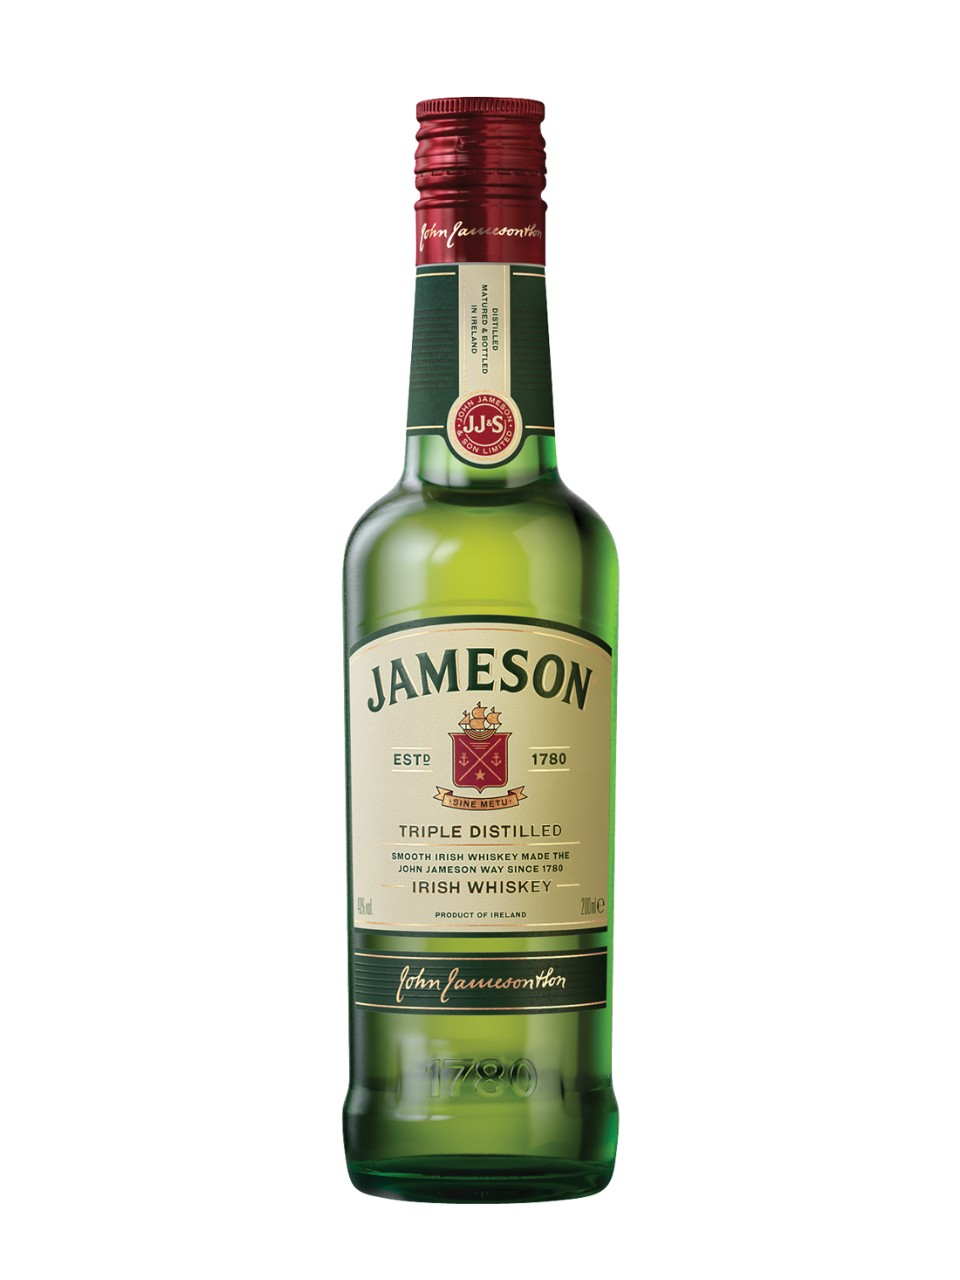 Jameson Irish Whiskey from LCBO